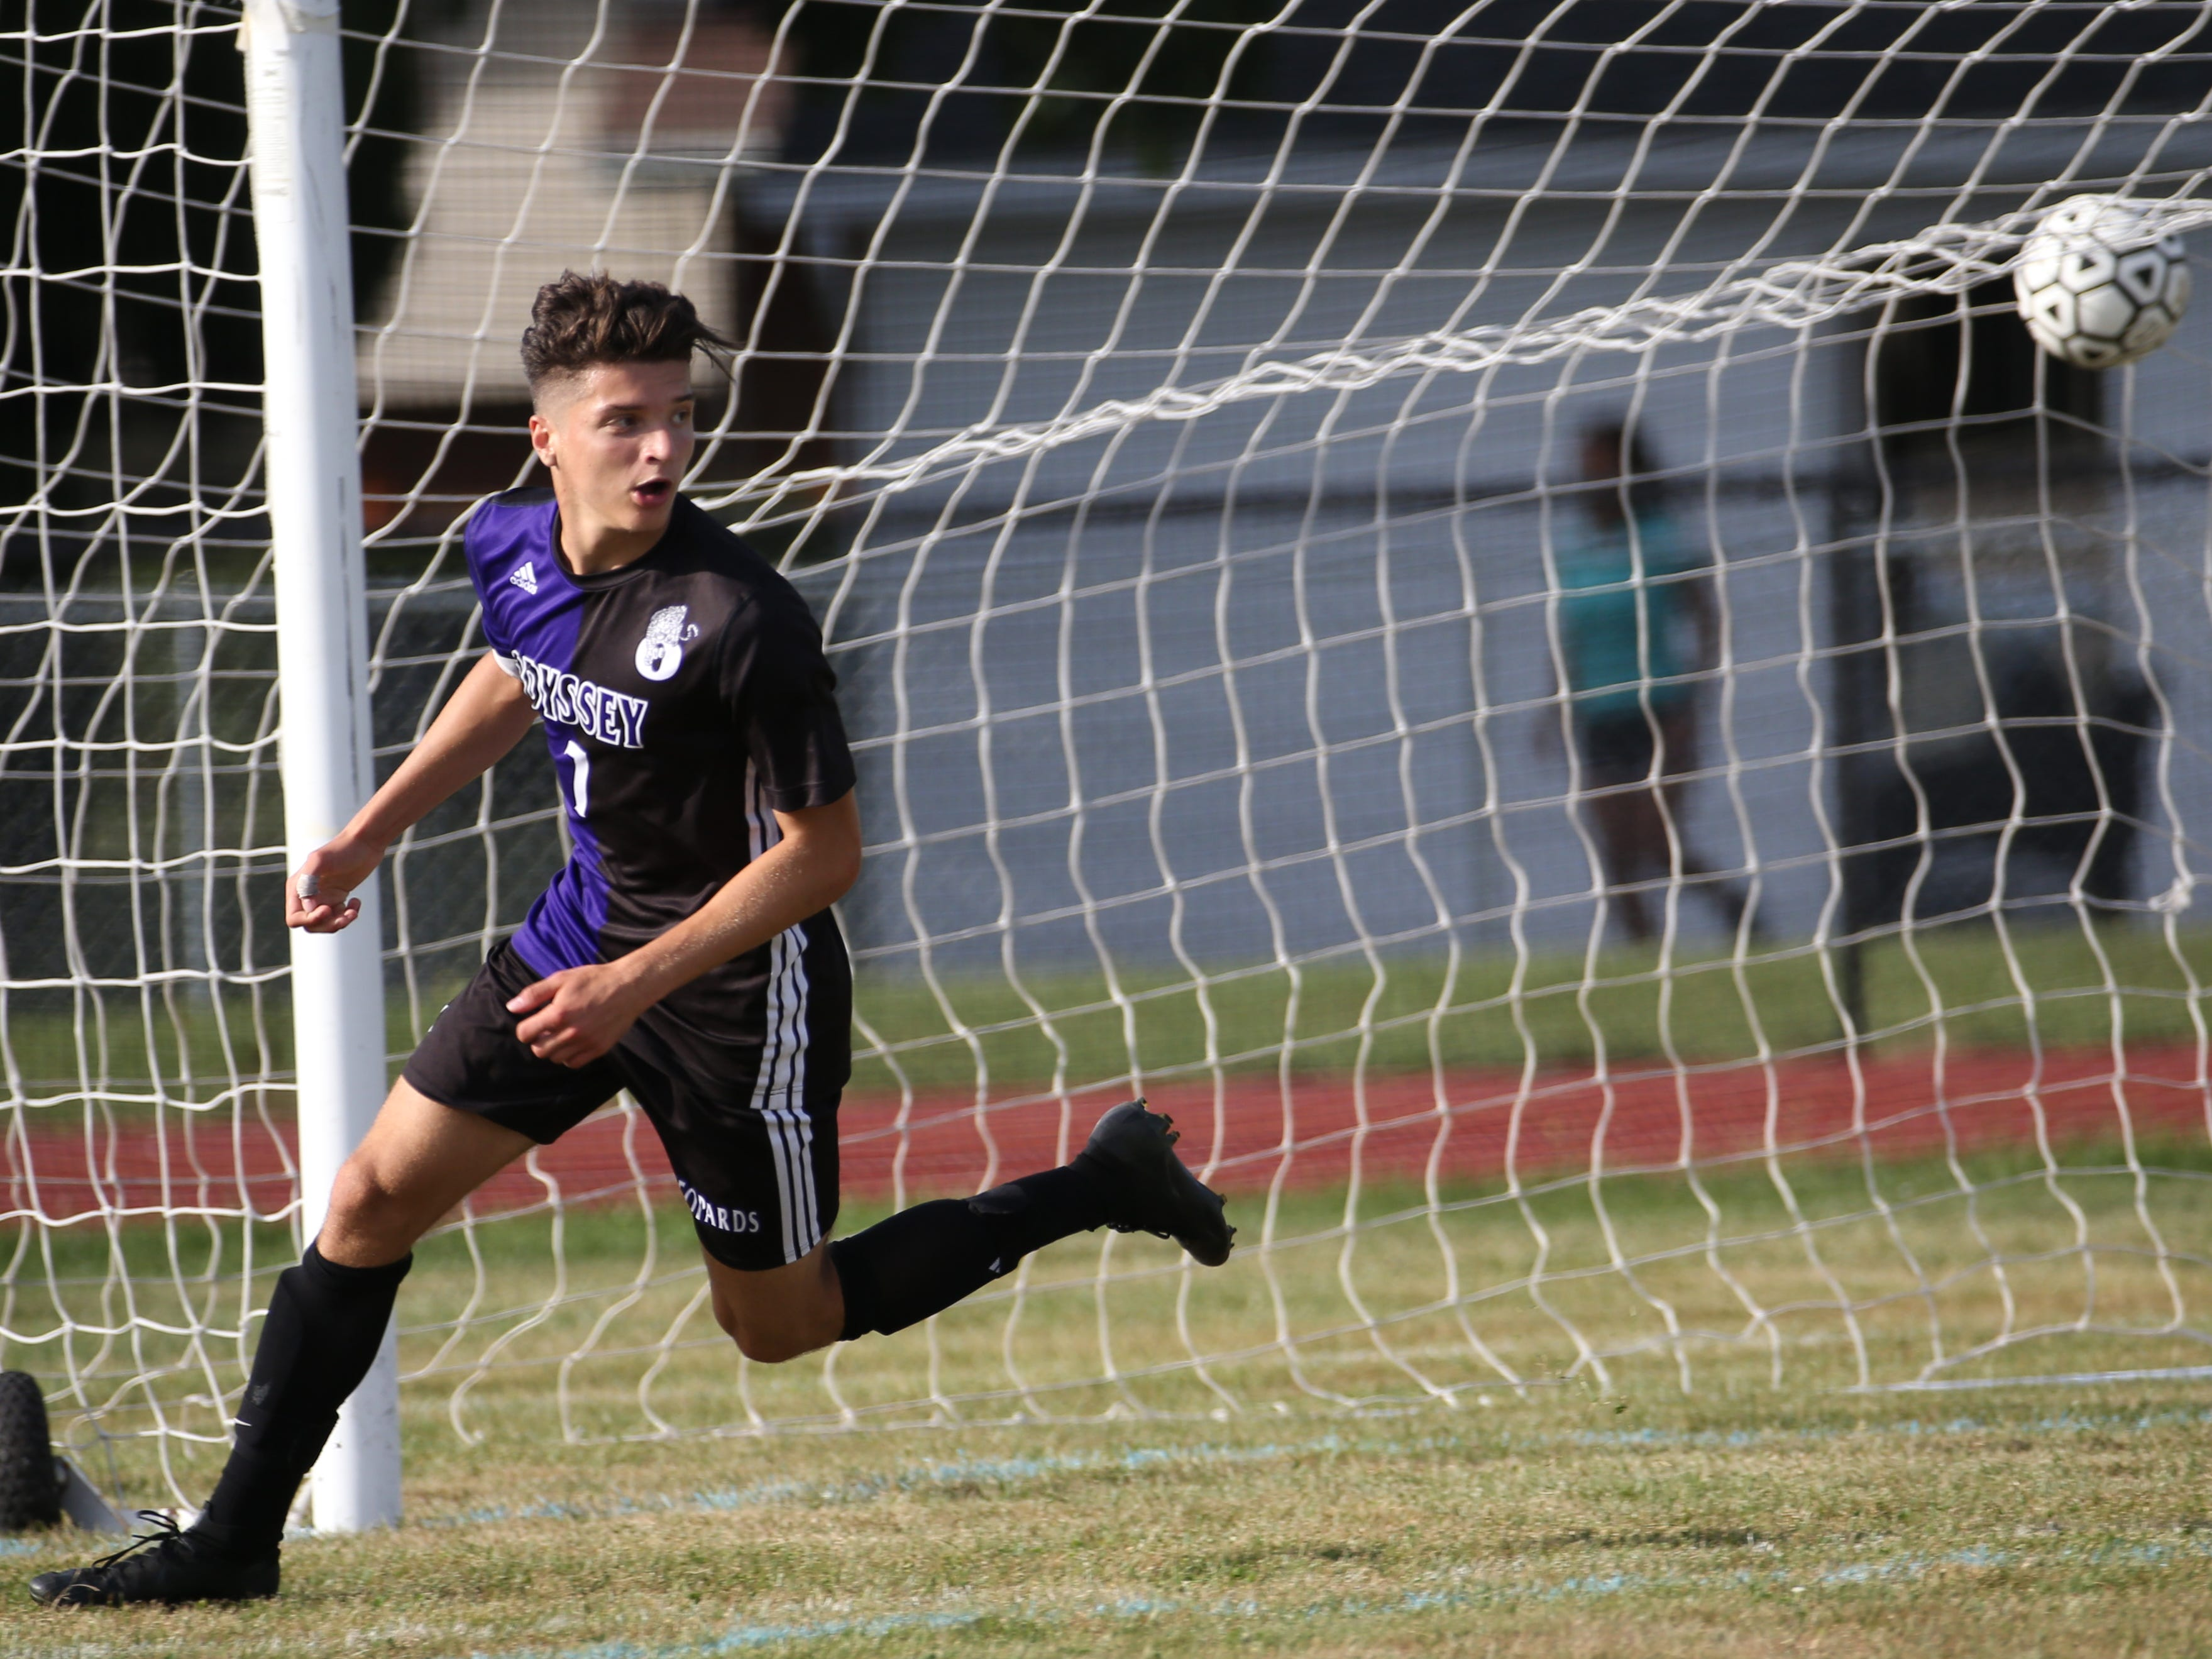 Greece Odyssey's Dylan Ange (7) celebrates his goal against Honeoye Falls-Lima in the first half of a game played on Sept. 4. Ange has 24 goals this season for the top-seeded Leopards.